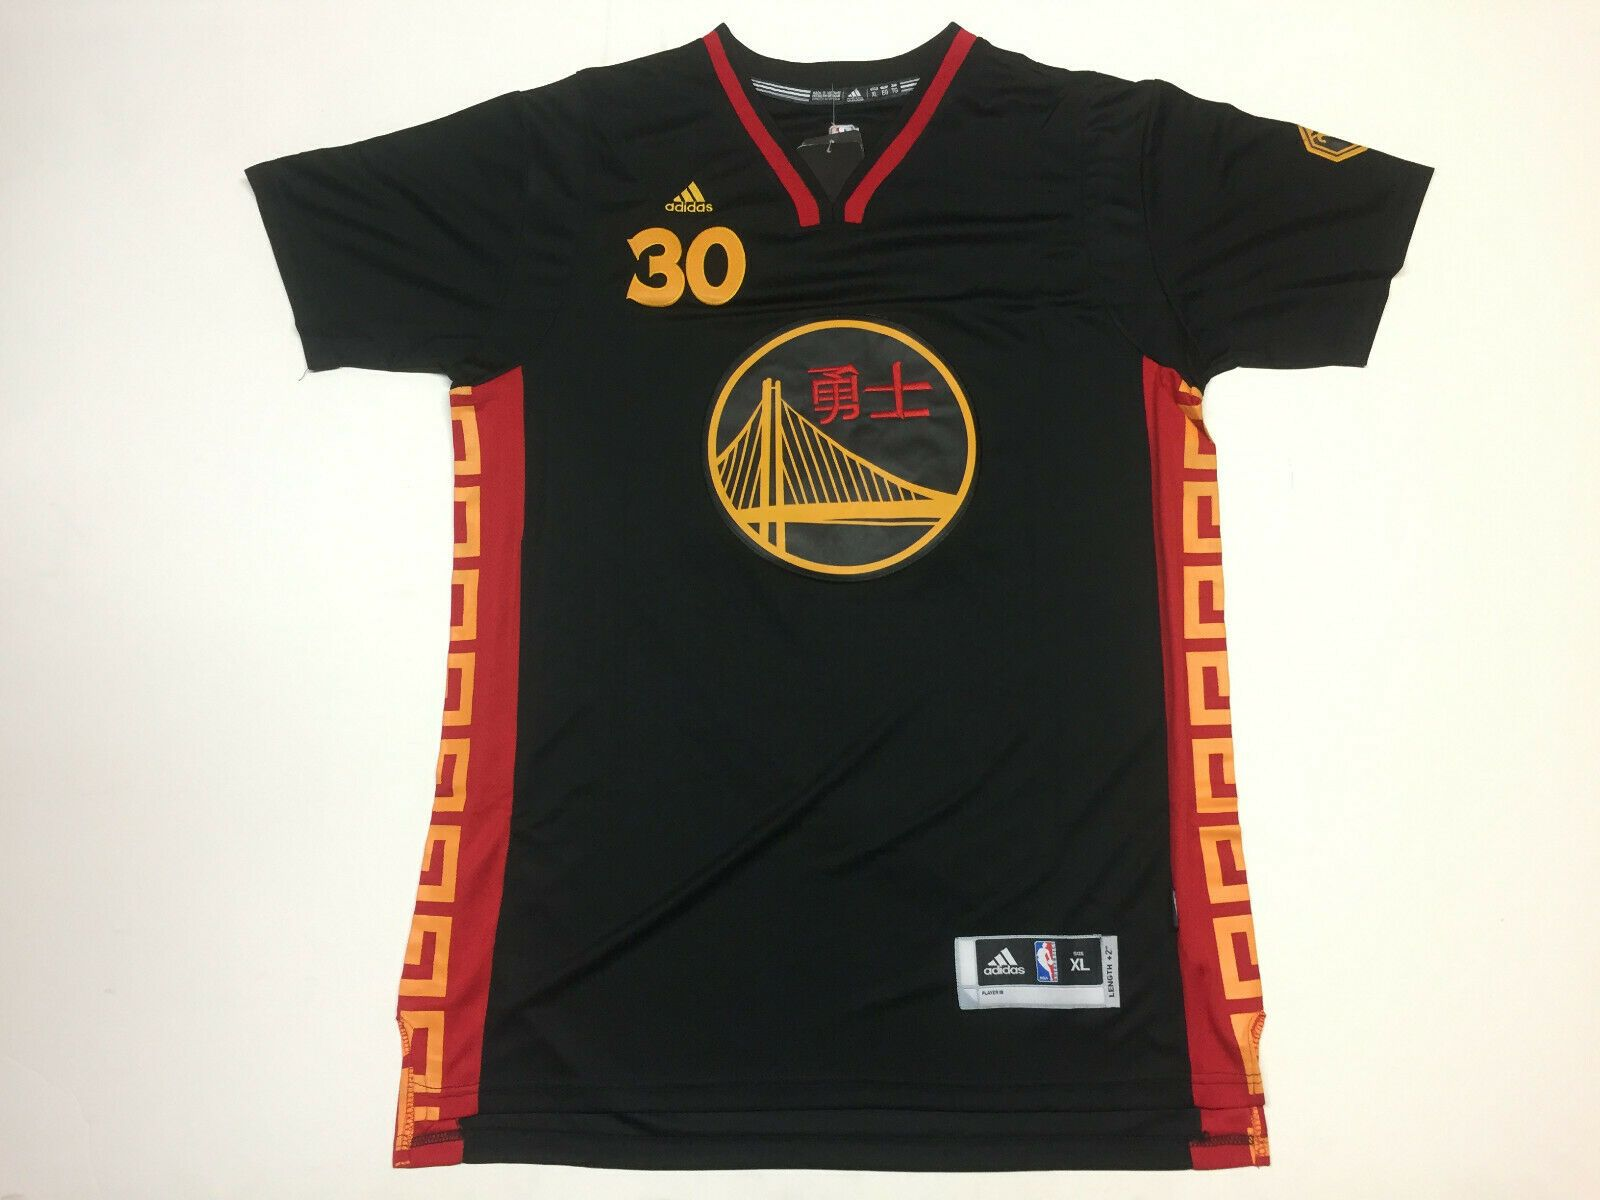 newest 3664d c0e13 STEPHEN CURRY Golden State Warriors 2015 CHINESE NEW YEAR ...